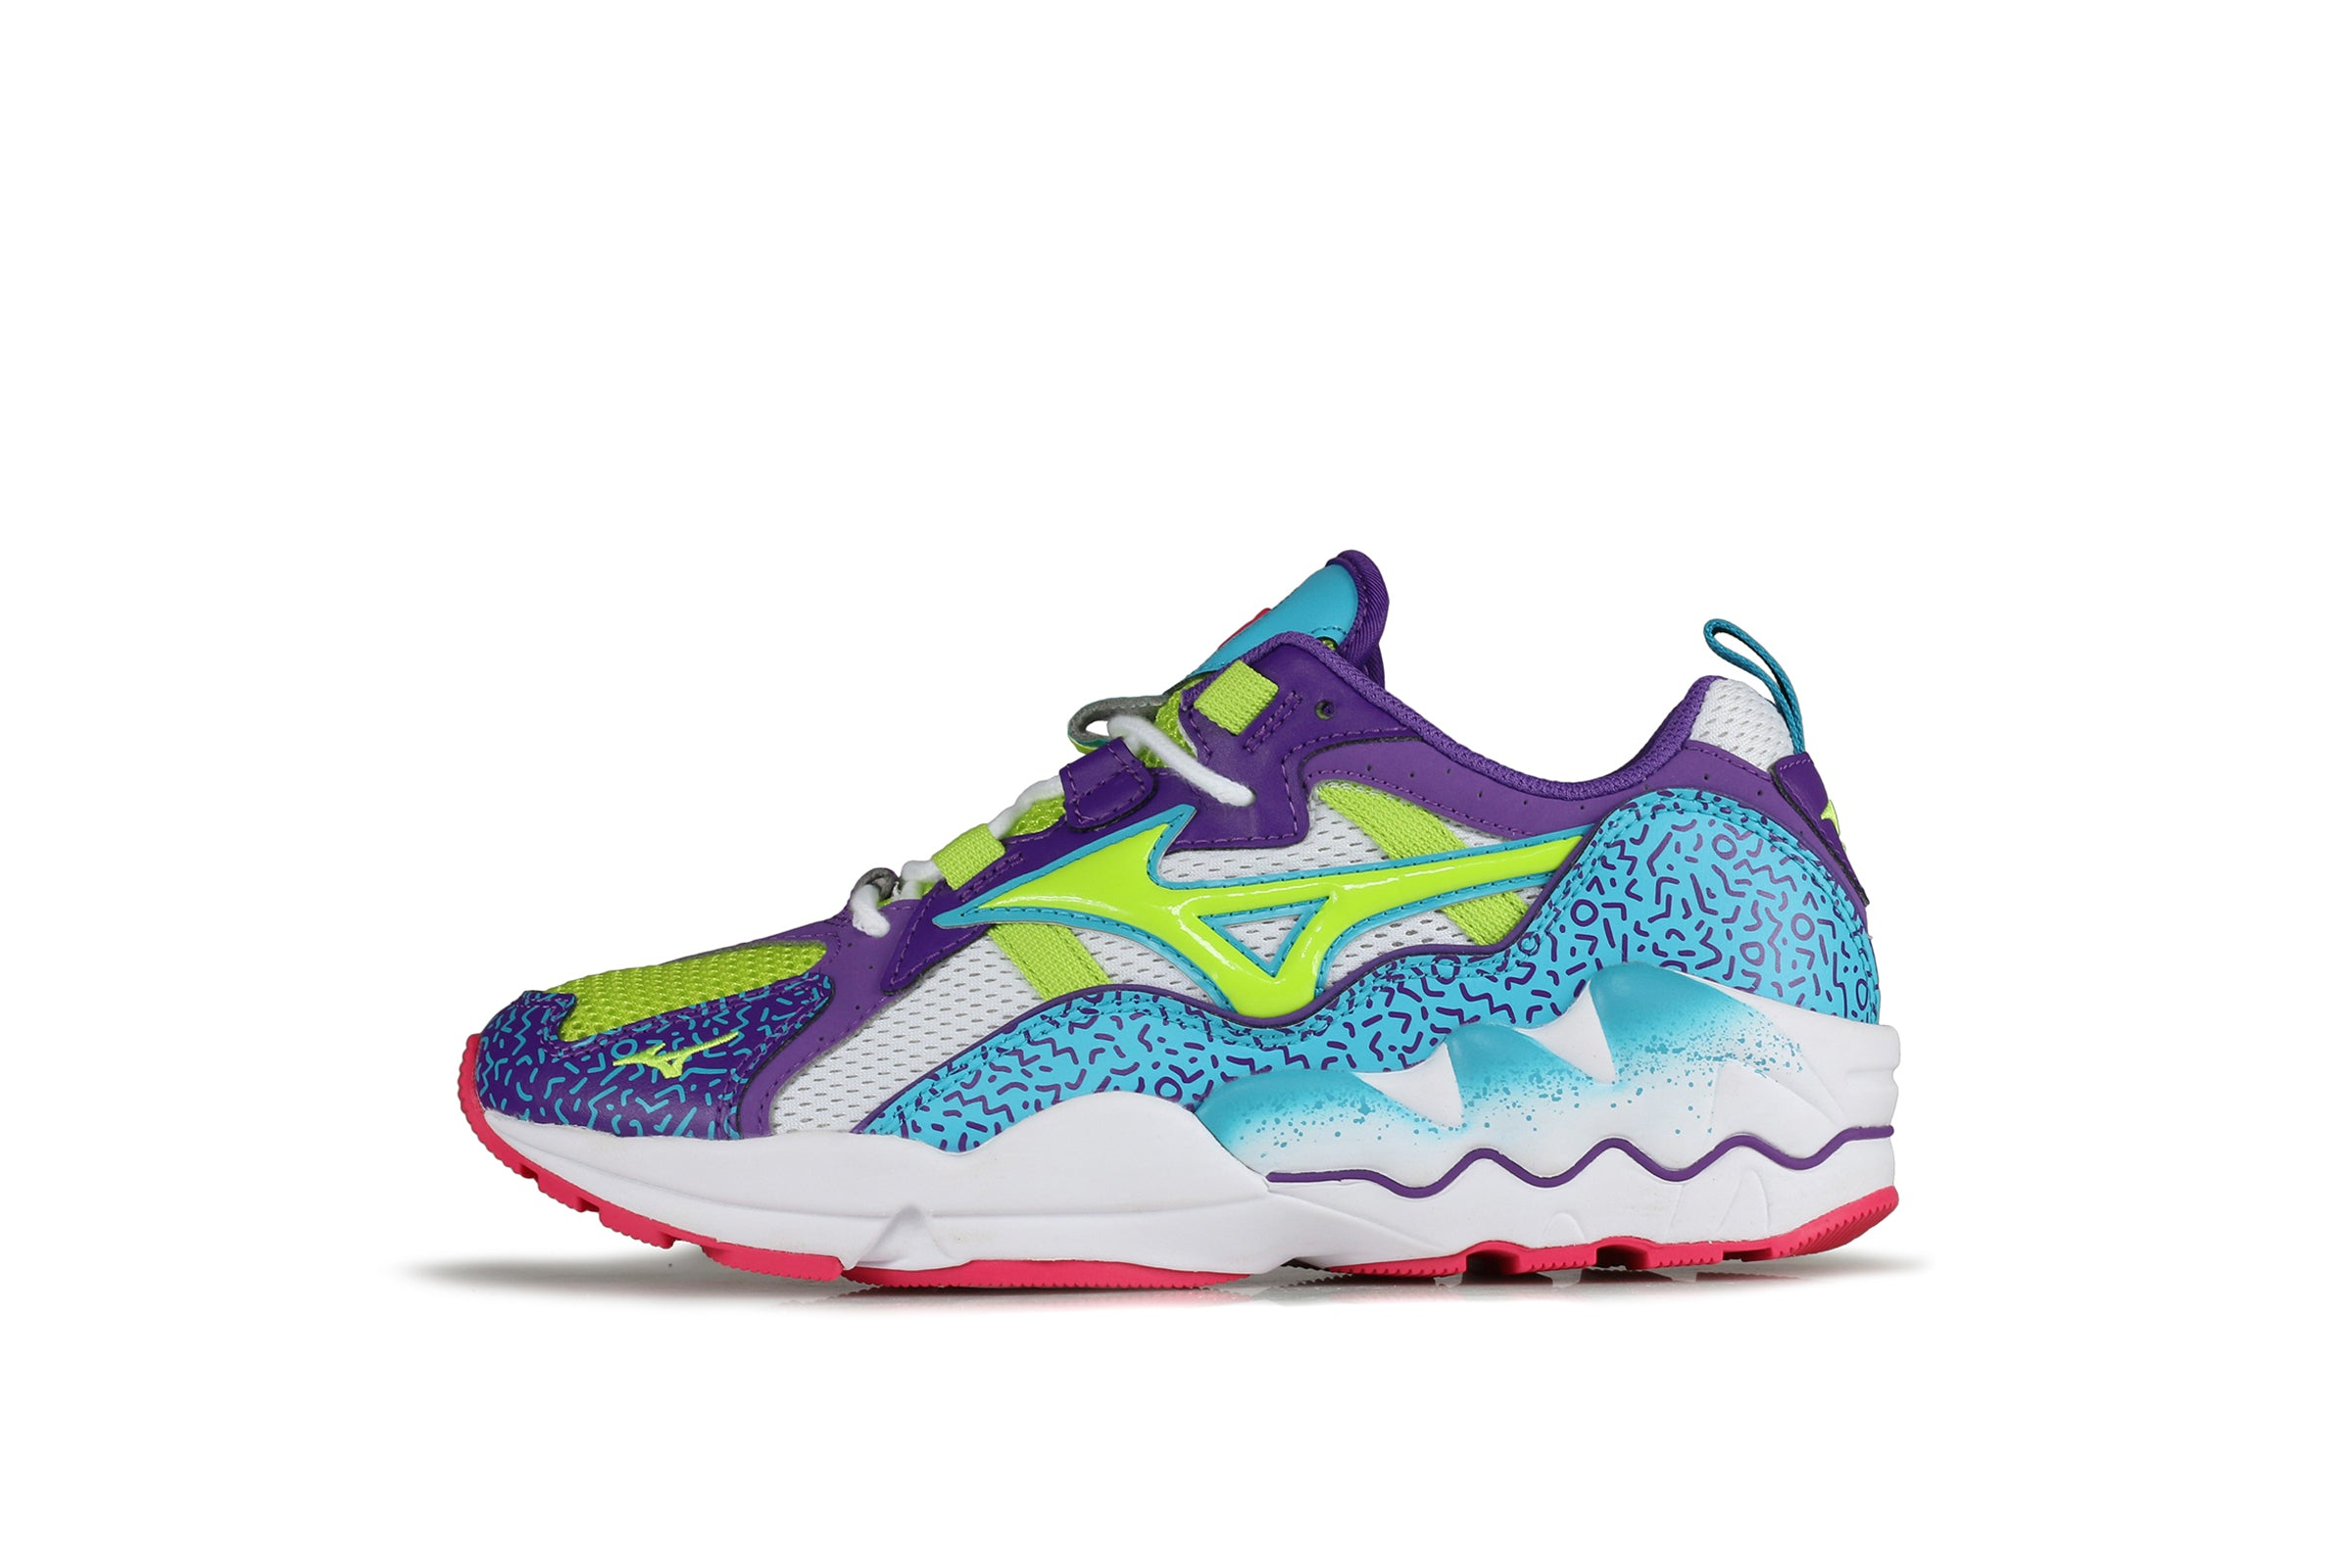 mizuno wave sky 2 vs wave rider 22 limited mexico 70